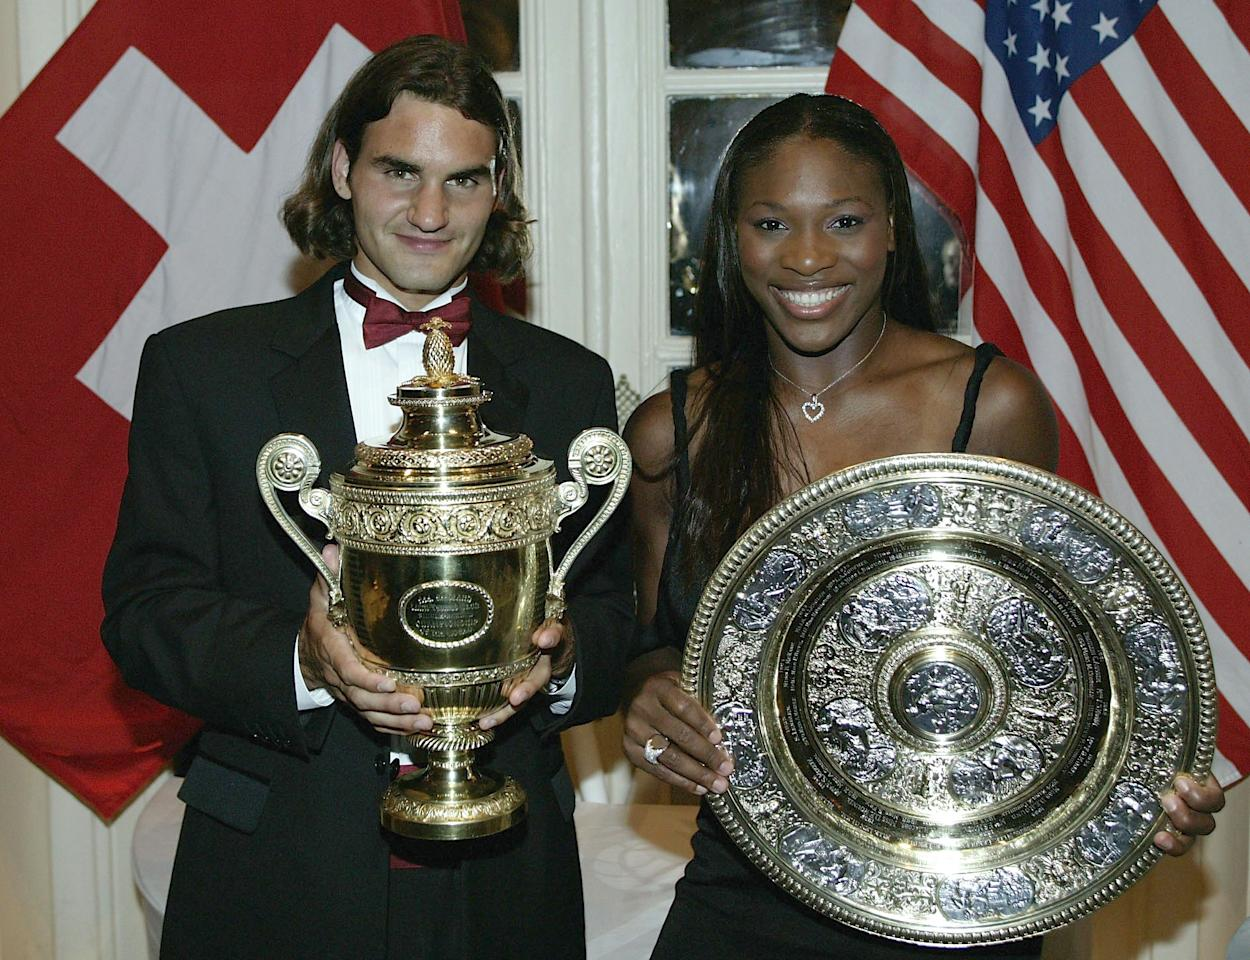 LONDON - JULY 6:  (FILE PHOTO) Wimbledon Champions Roger Federer of Switzerland and Serena Williams of the U.S. pose for photographs prior to attending the Wimbledon Ball at the Savoy Hotel on July 6, 2003 in London.  (Photo by Alex Livesey/Getty Images)  Celebrating 125 Years Of Wimbledon  Please refer to the following profile on Getty Images Archival for further imagery.  https://ec.yimg.com/ec?url=http%3a%2f%2fwww.gettyimages.co.uk%2fSearch%2fSearch.aspx%3fEventId%3d115973863%26amp%3bEditorialProduct%3dArchival%0aFashions&t=1493293824&sig=N54t4ap8JZ9xm4dexPq7Uw--~C  http://www.gettyimages.co.uk/Search/Search.aspx?EventId=115973067&EditorialProduct=Archival  For further imagery also see this lightbox http://www.gettyimages.co.uk/Account/MediaBin/LightboxDetail.aspx?Id=19295855&MediaBinUserId=3936288